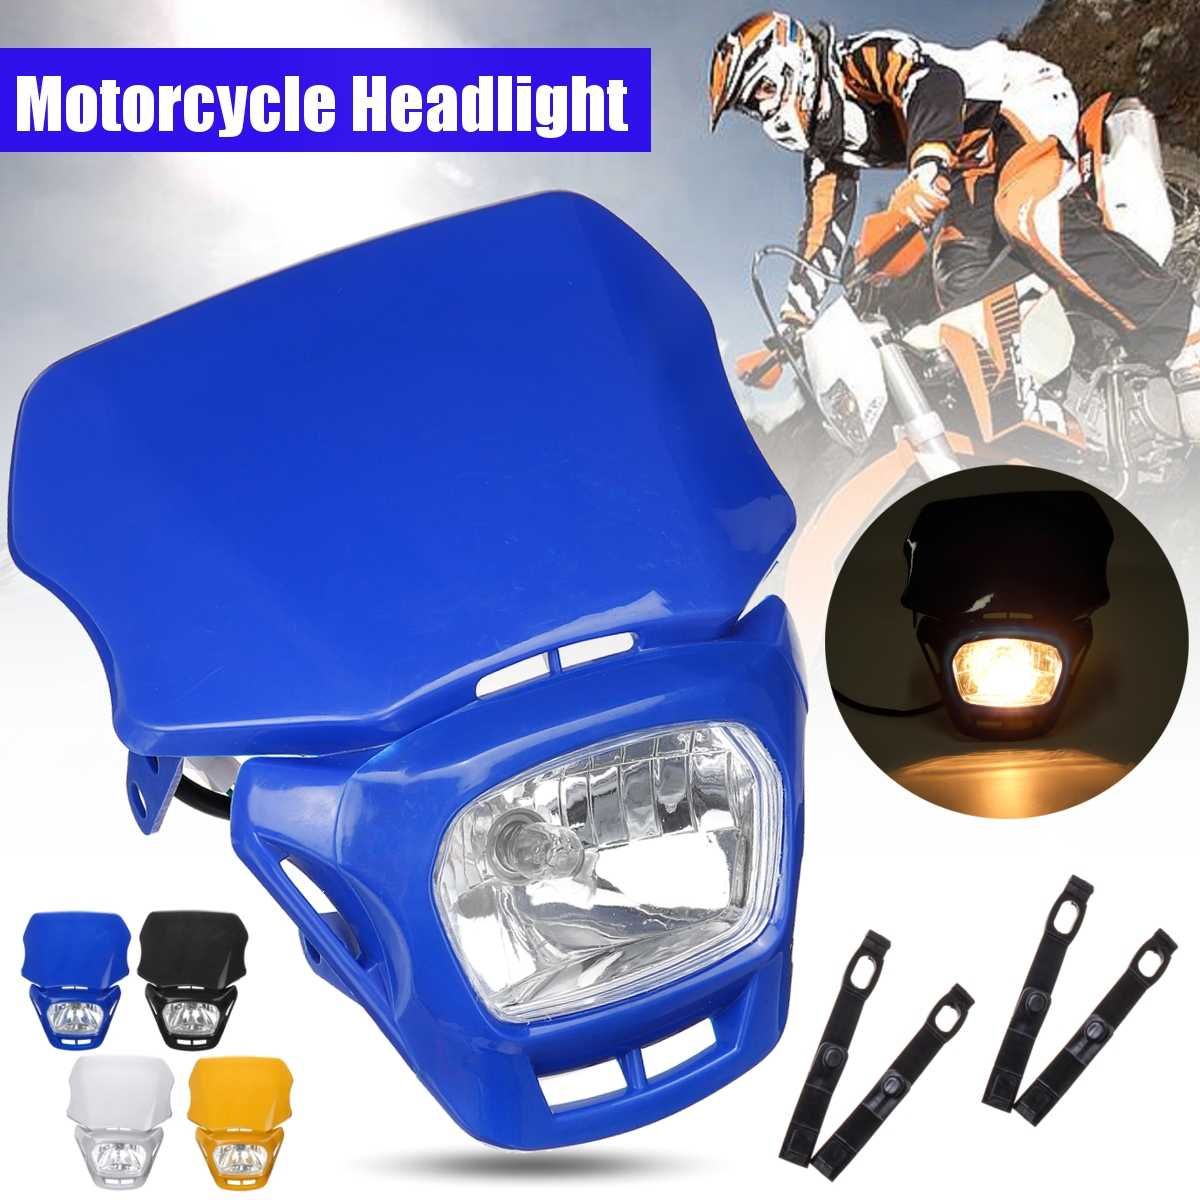 <font><b>Universal</b></font> Motorcycle <font><b>Dirt</b></font> <font><b>Bike</b></font> <font><b>Headlight</b></font> Fairing for Dual Sport moto For KTM EXC EXCF XCF XCW SX/Honda/Kawasaki <font><b>HeadLight</b></font> lamp image